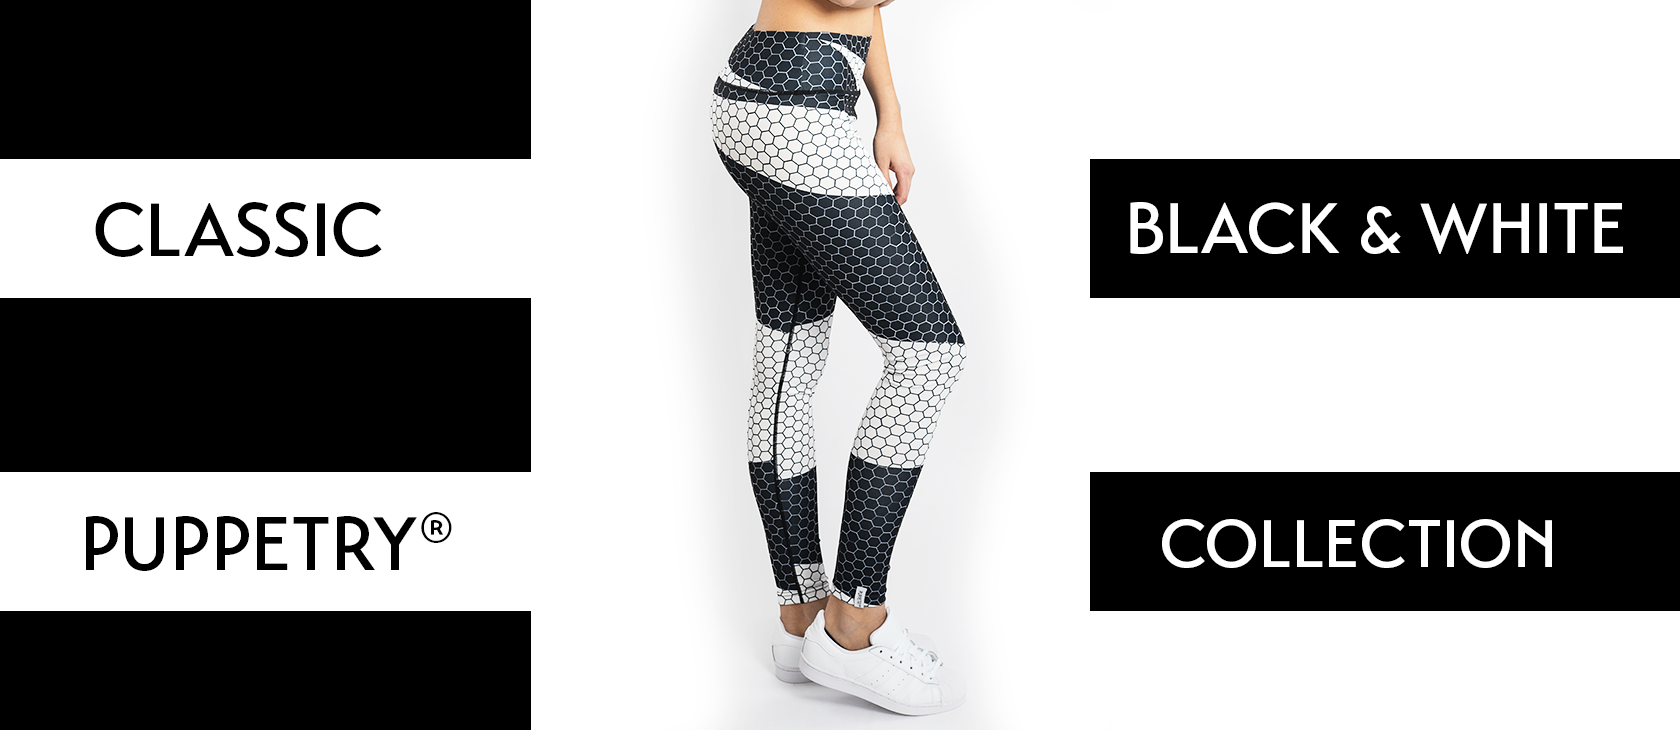 Puppetry black and white Honeycomb Leggings Online Shop, Leggings im Sale kaufen